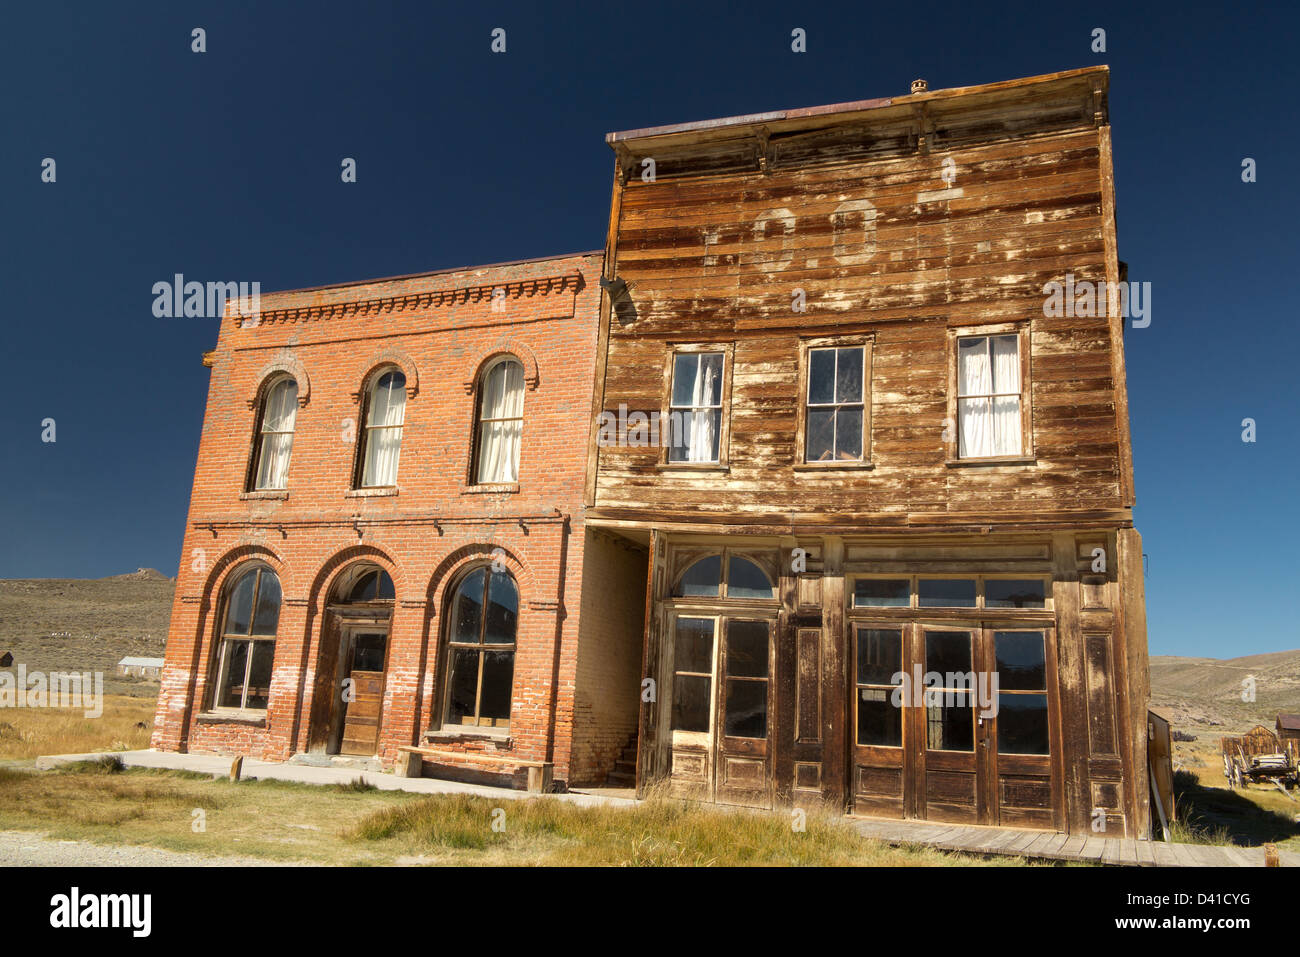 The abandoned mining town Bodie, California, USA - Stock Image